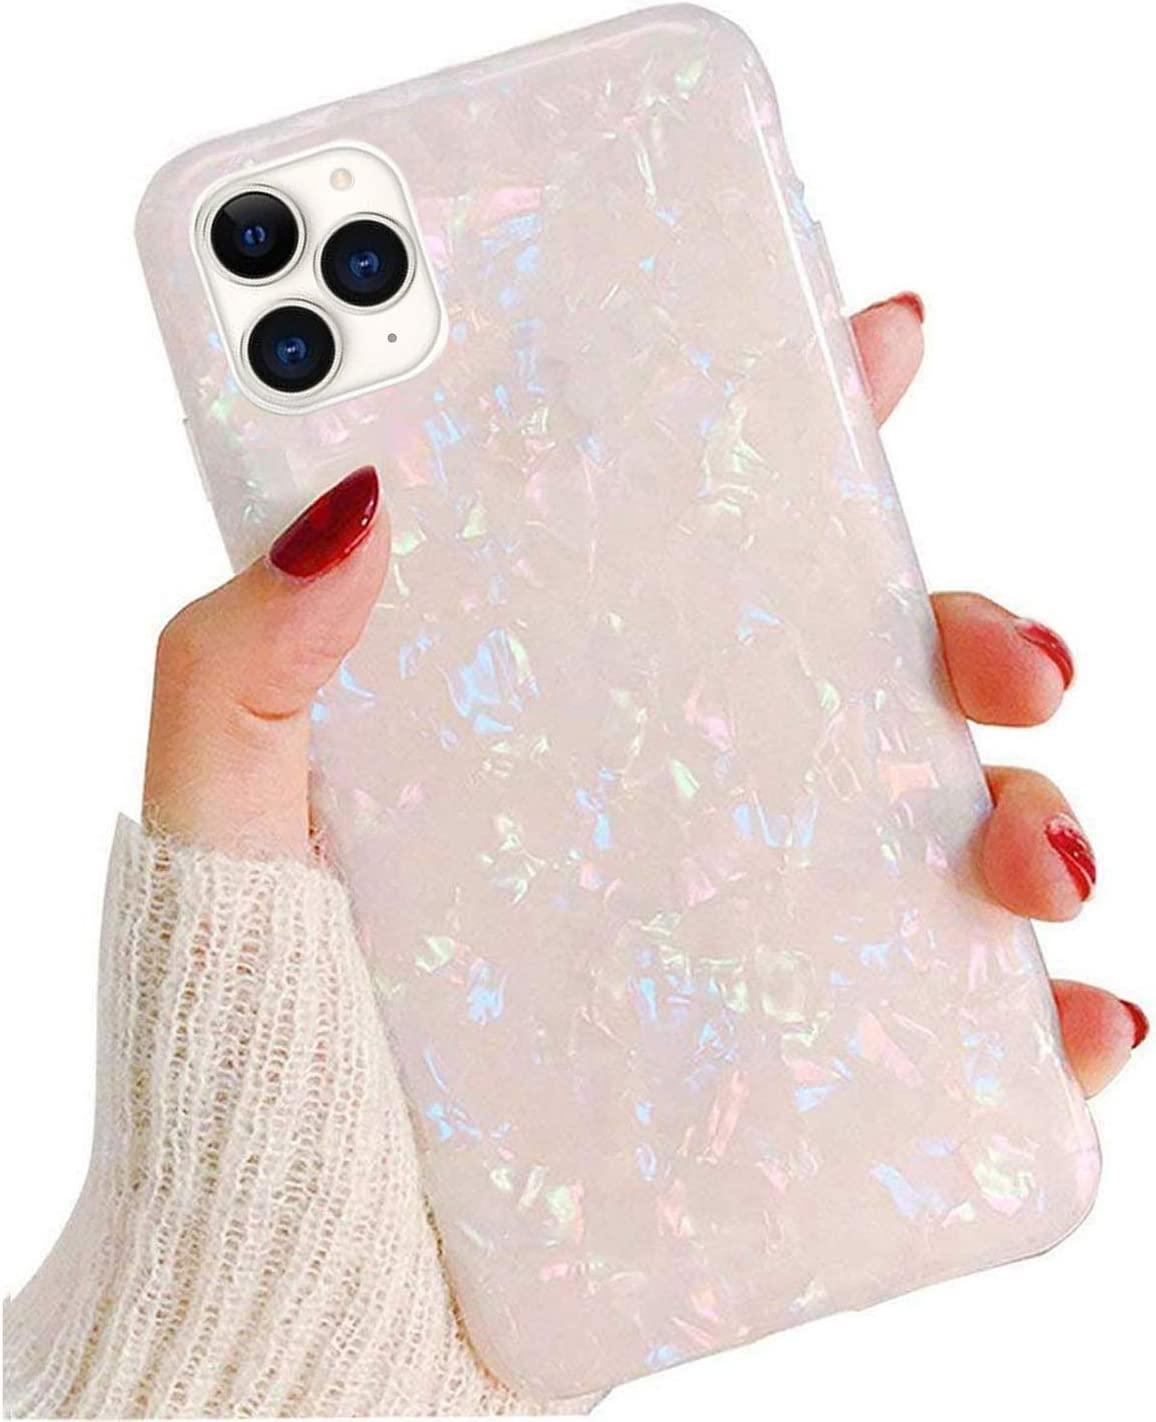 GYZCYQ iPhone 11 Pro Max Case for Girls Women, Cute Phone Case Glitter Pretty Design Protective Shockproof Pearly-Lustre Shell Slim Soft TPU Rubber Cover for iPhone 11 Pro Max (6.5 inch)-Colorful